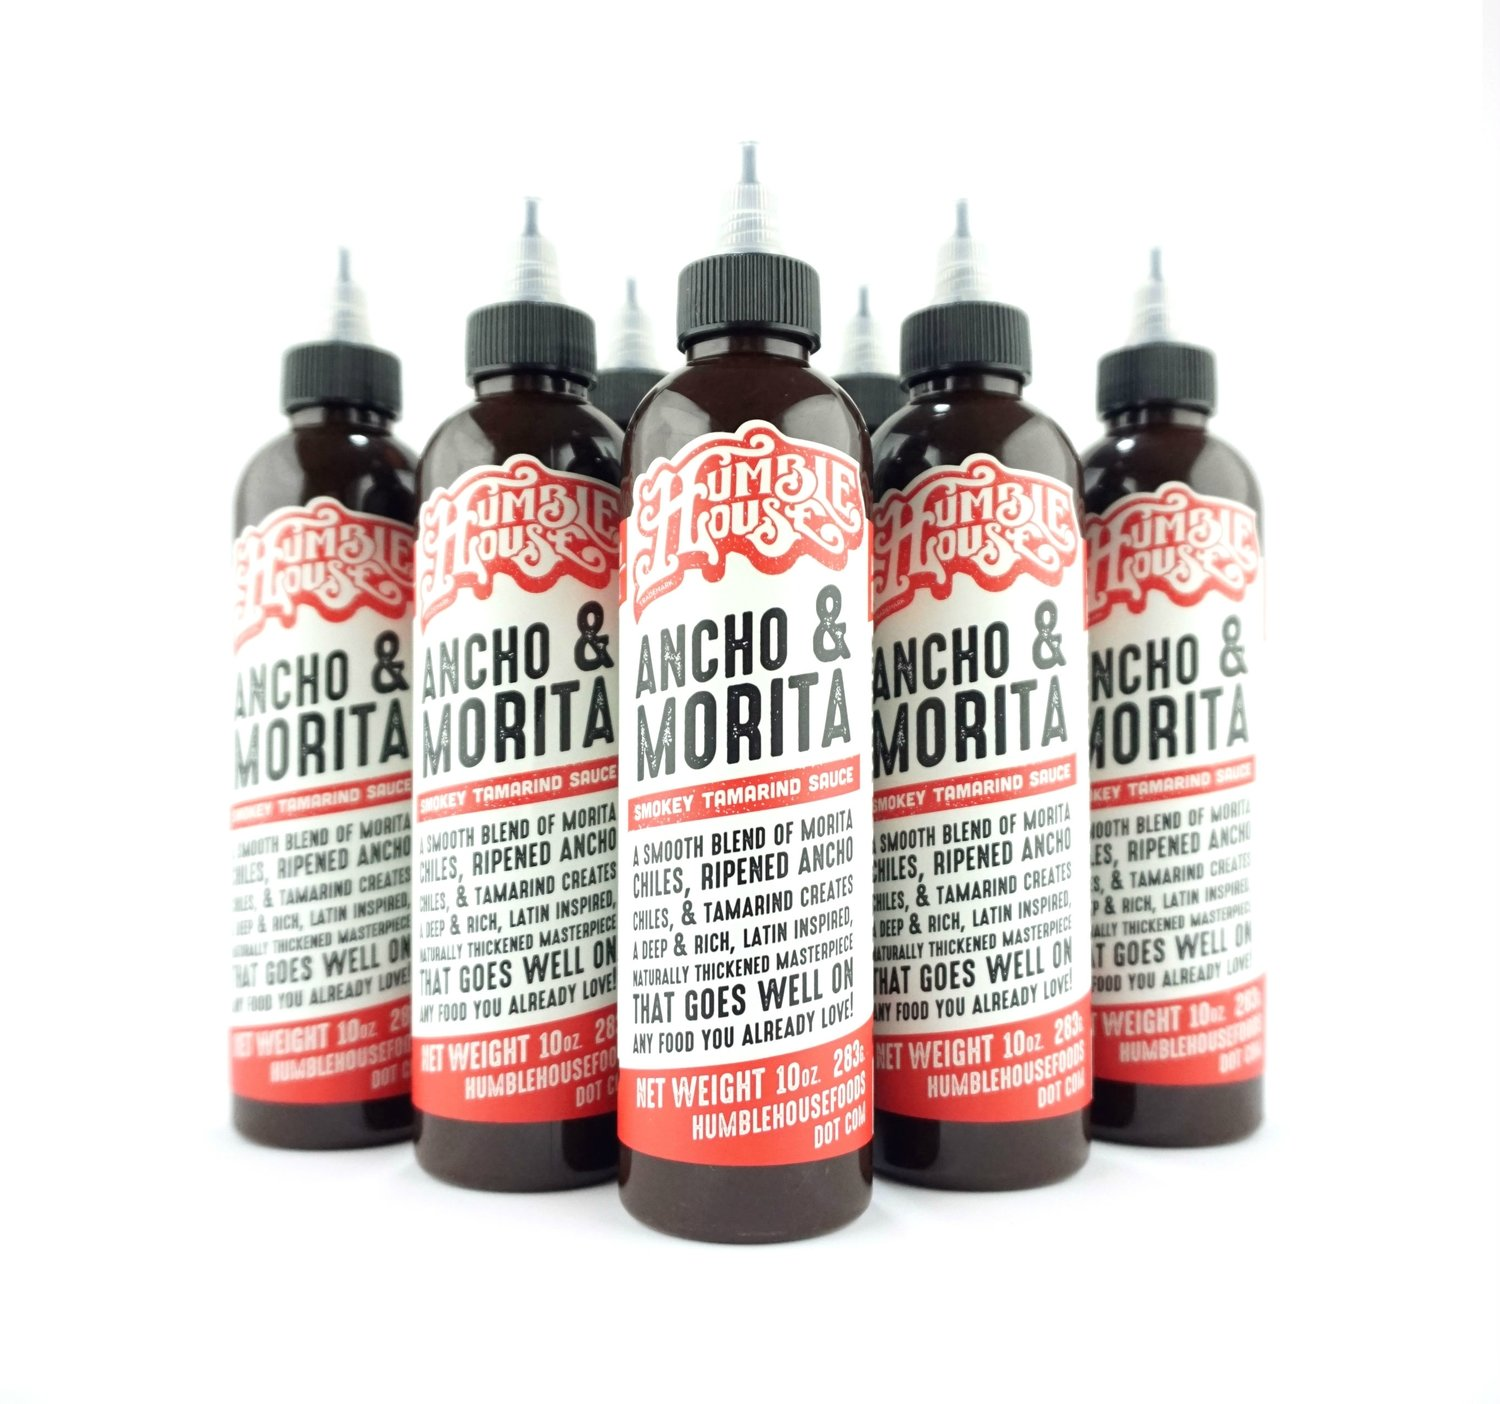 Case of Ancho & Morita Hot Sauce